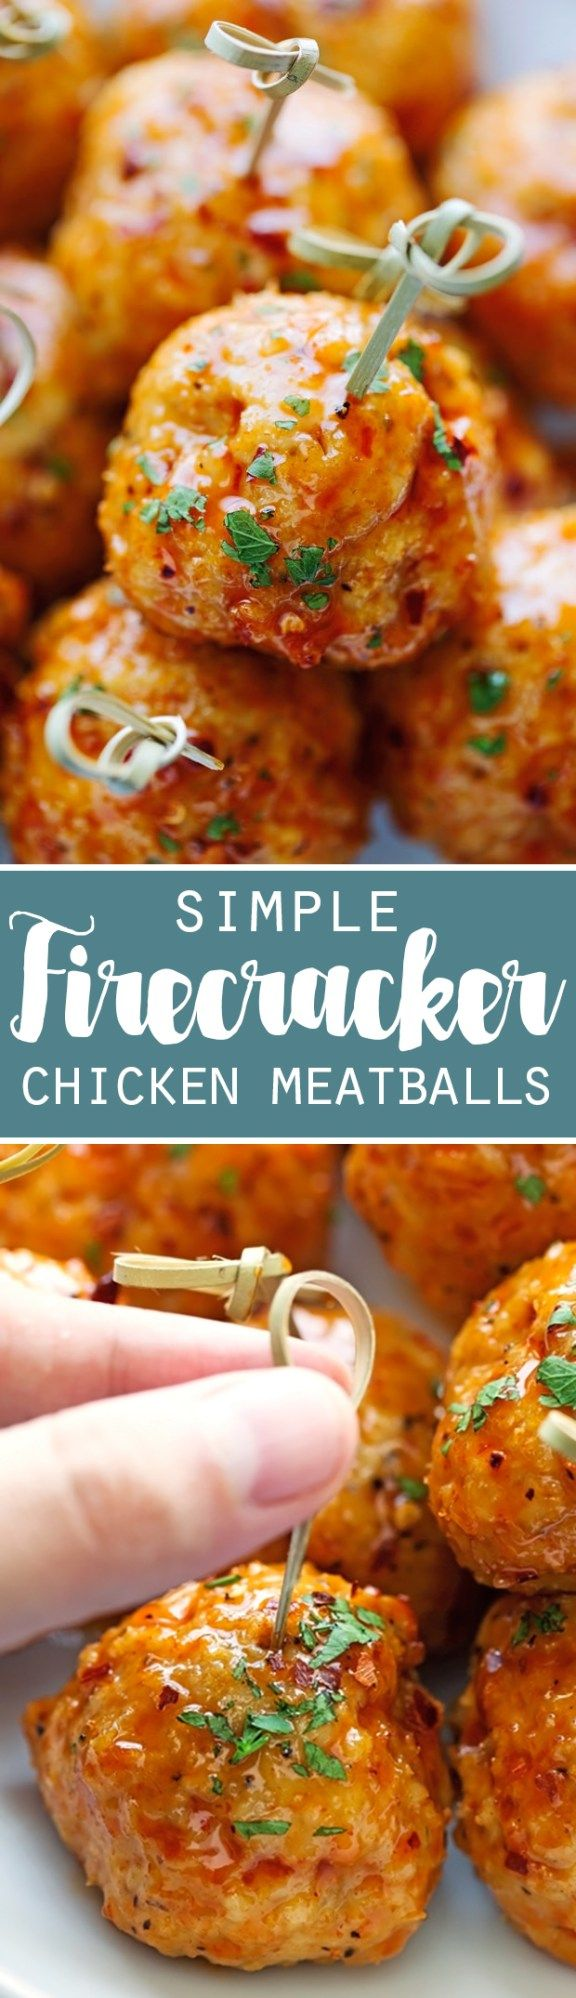 This is my favorite way to eat chicken meatballs. They're spiced up with a sweet, savory, and spicy firecracker sauce. They're tender, filled with flavor, and require minimum work!